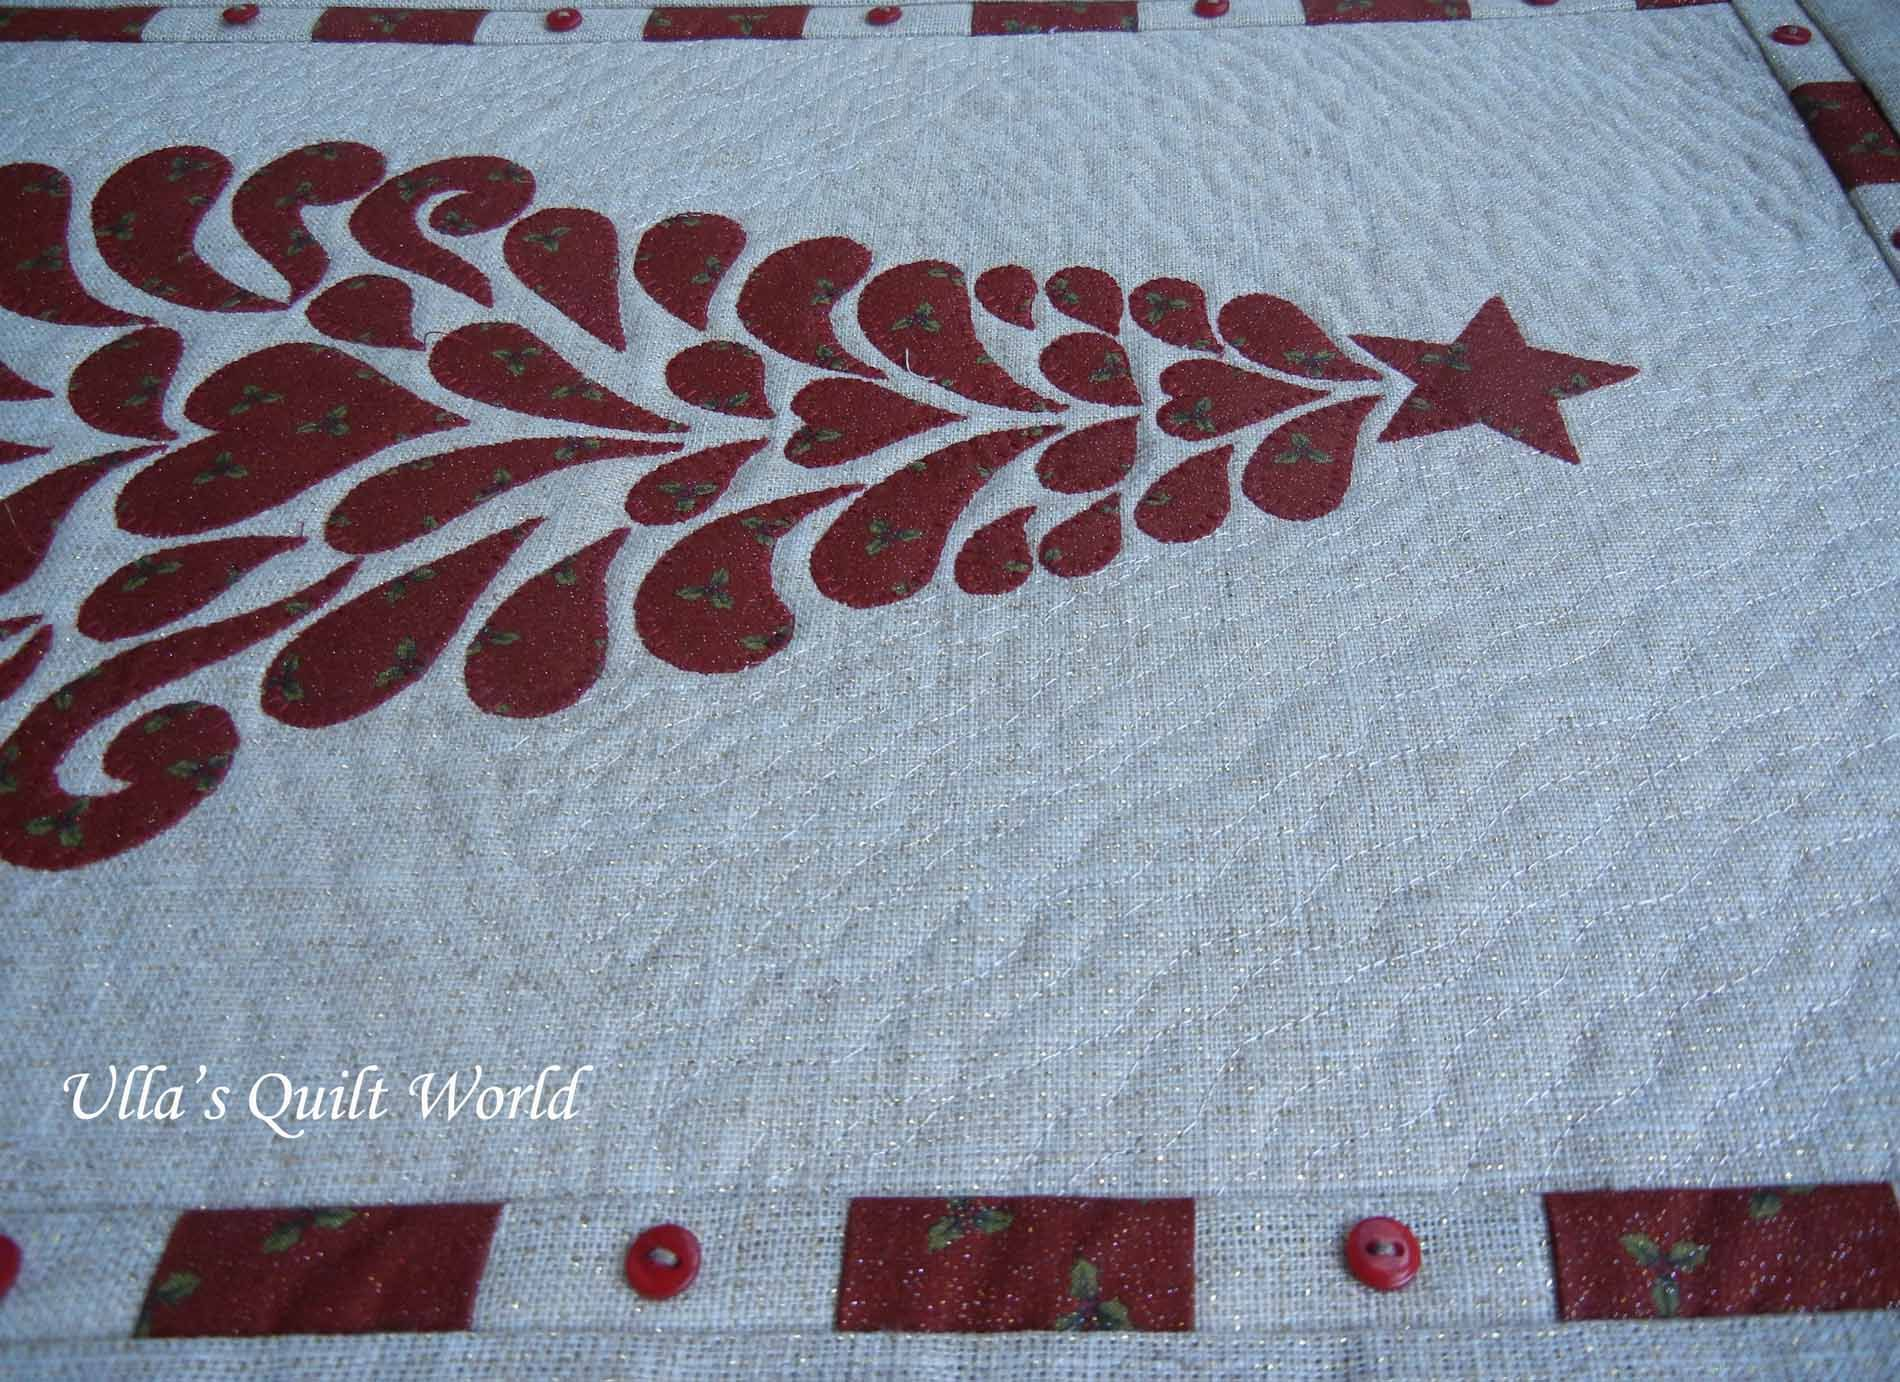 Christmas tree Quilt - Wall hanging Ulla's Quilt World